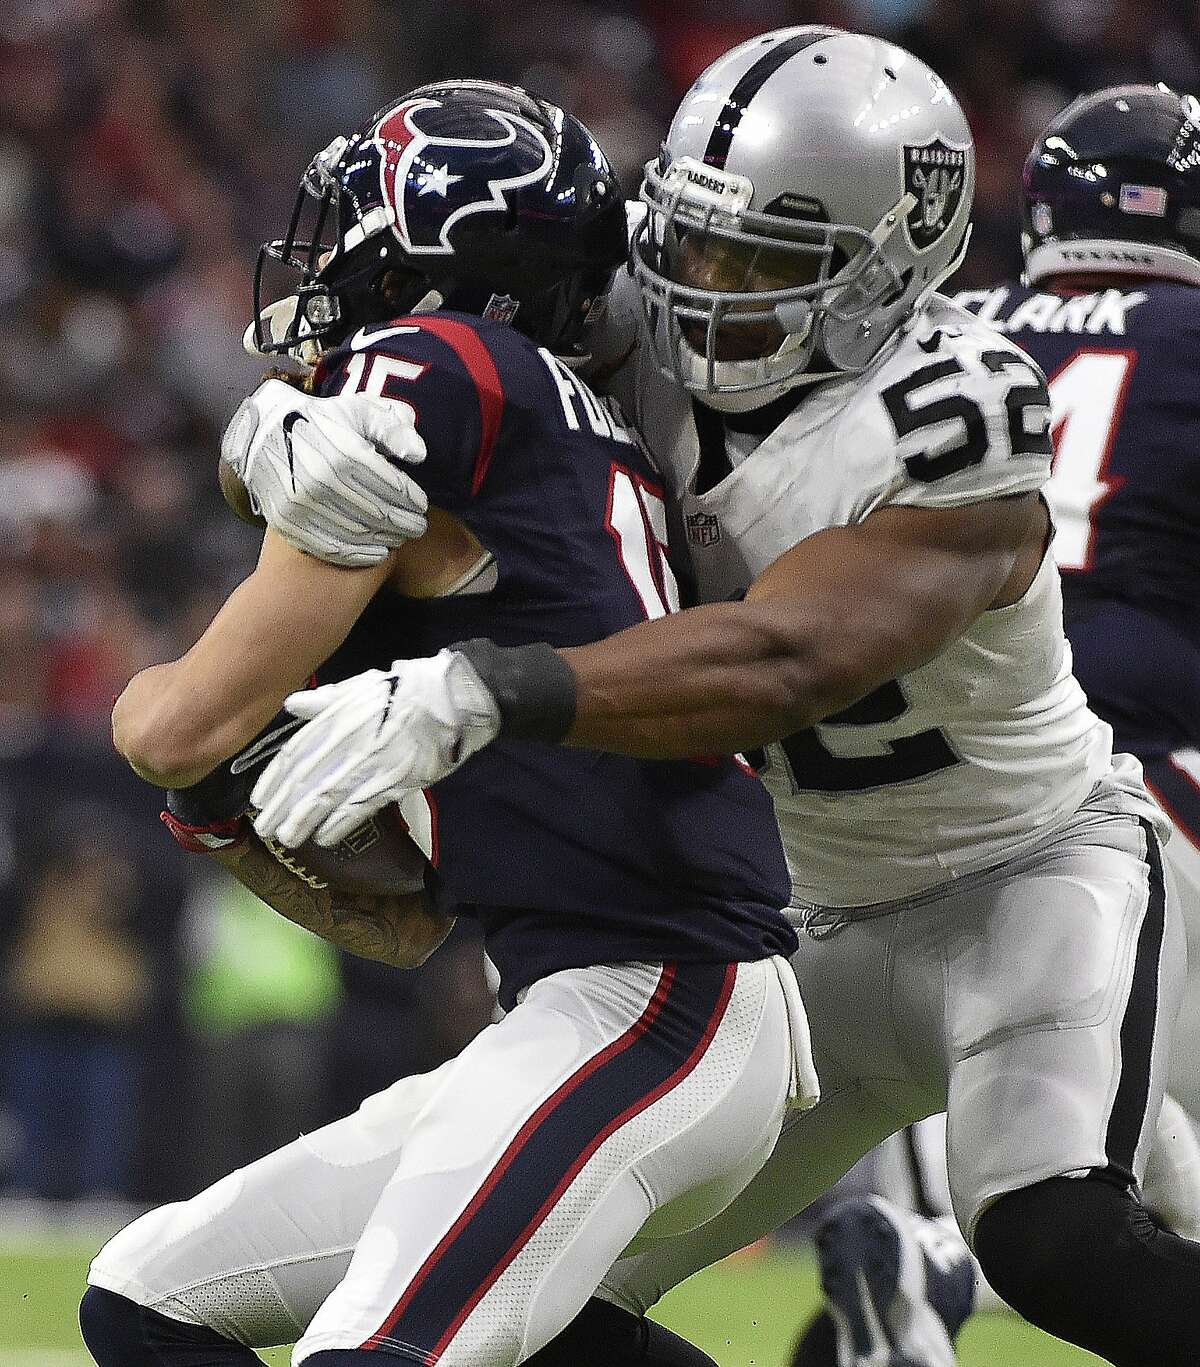 Oakland Raiders defensive end Khalil Mack (52) tackles Houston Texans wide receiver Will Fuller (15) during the first half of an AFC Wild Card NFL game Saturday, Jan. 7, 2017, in Houston. (AP Photo/Eric Christian Smith)